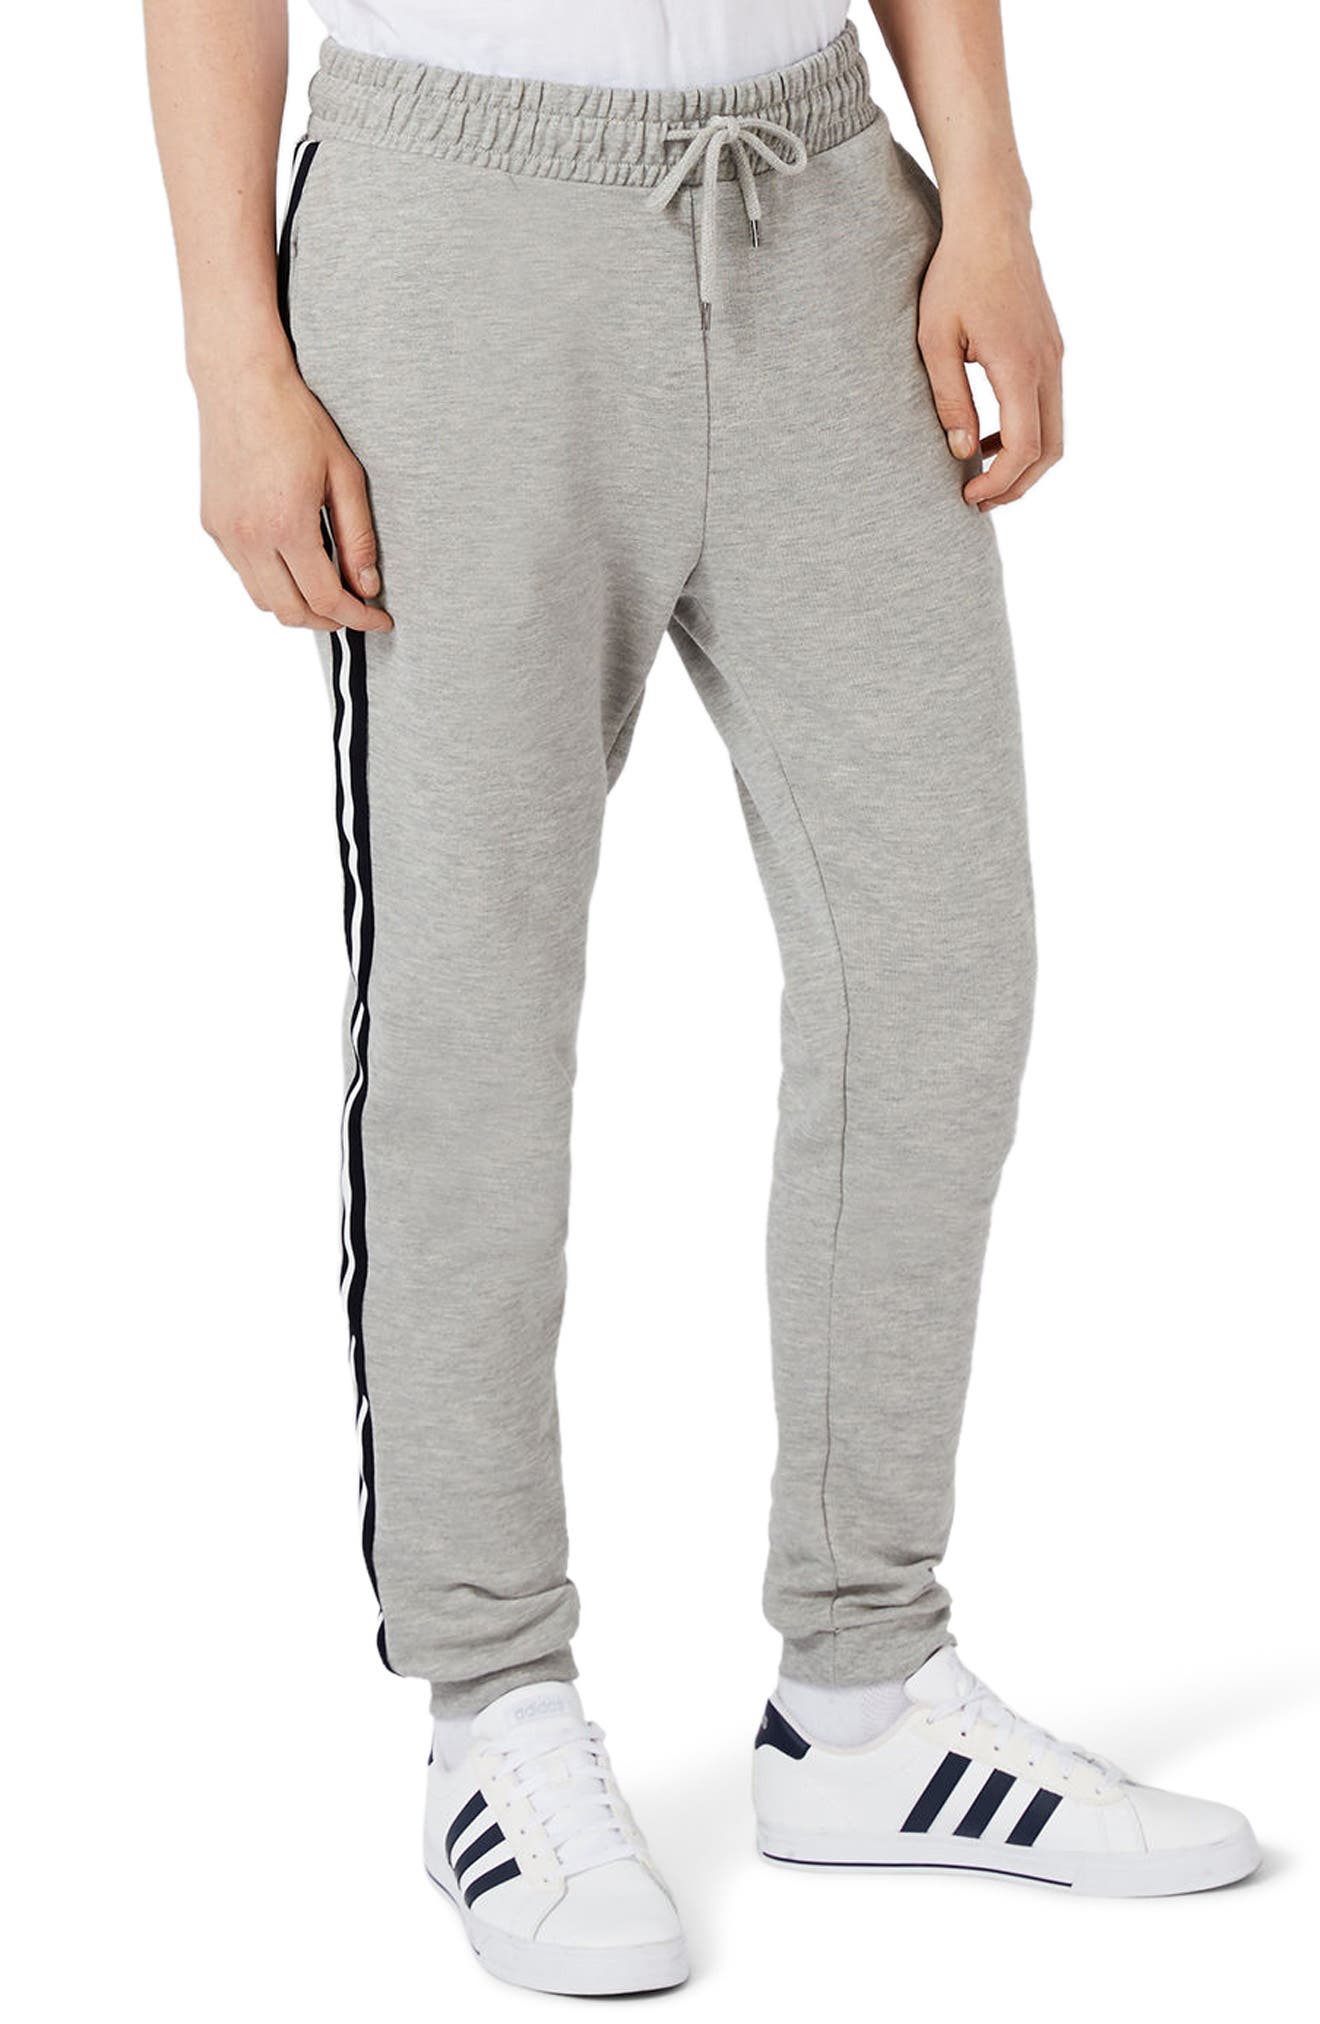 Topman Stripe Taped Sweatpants